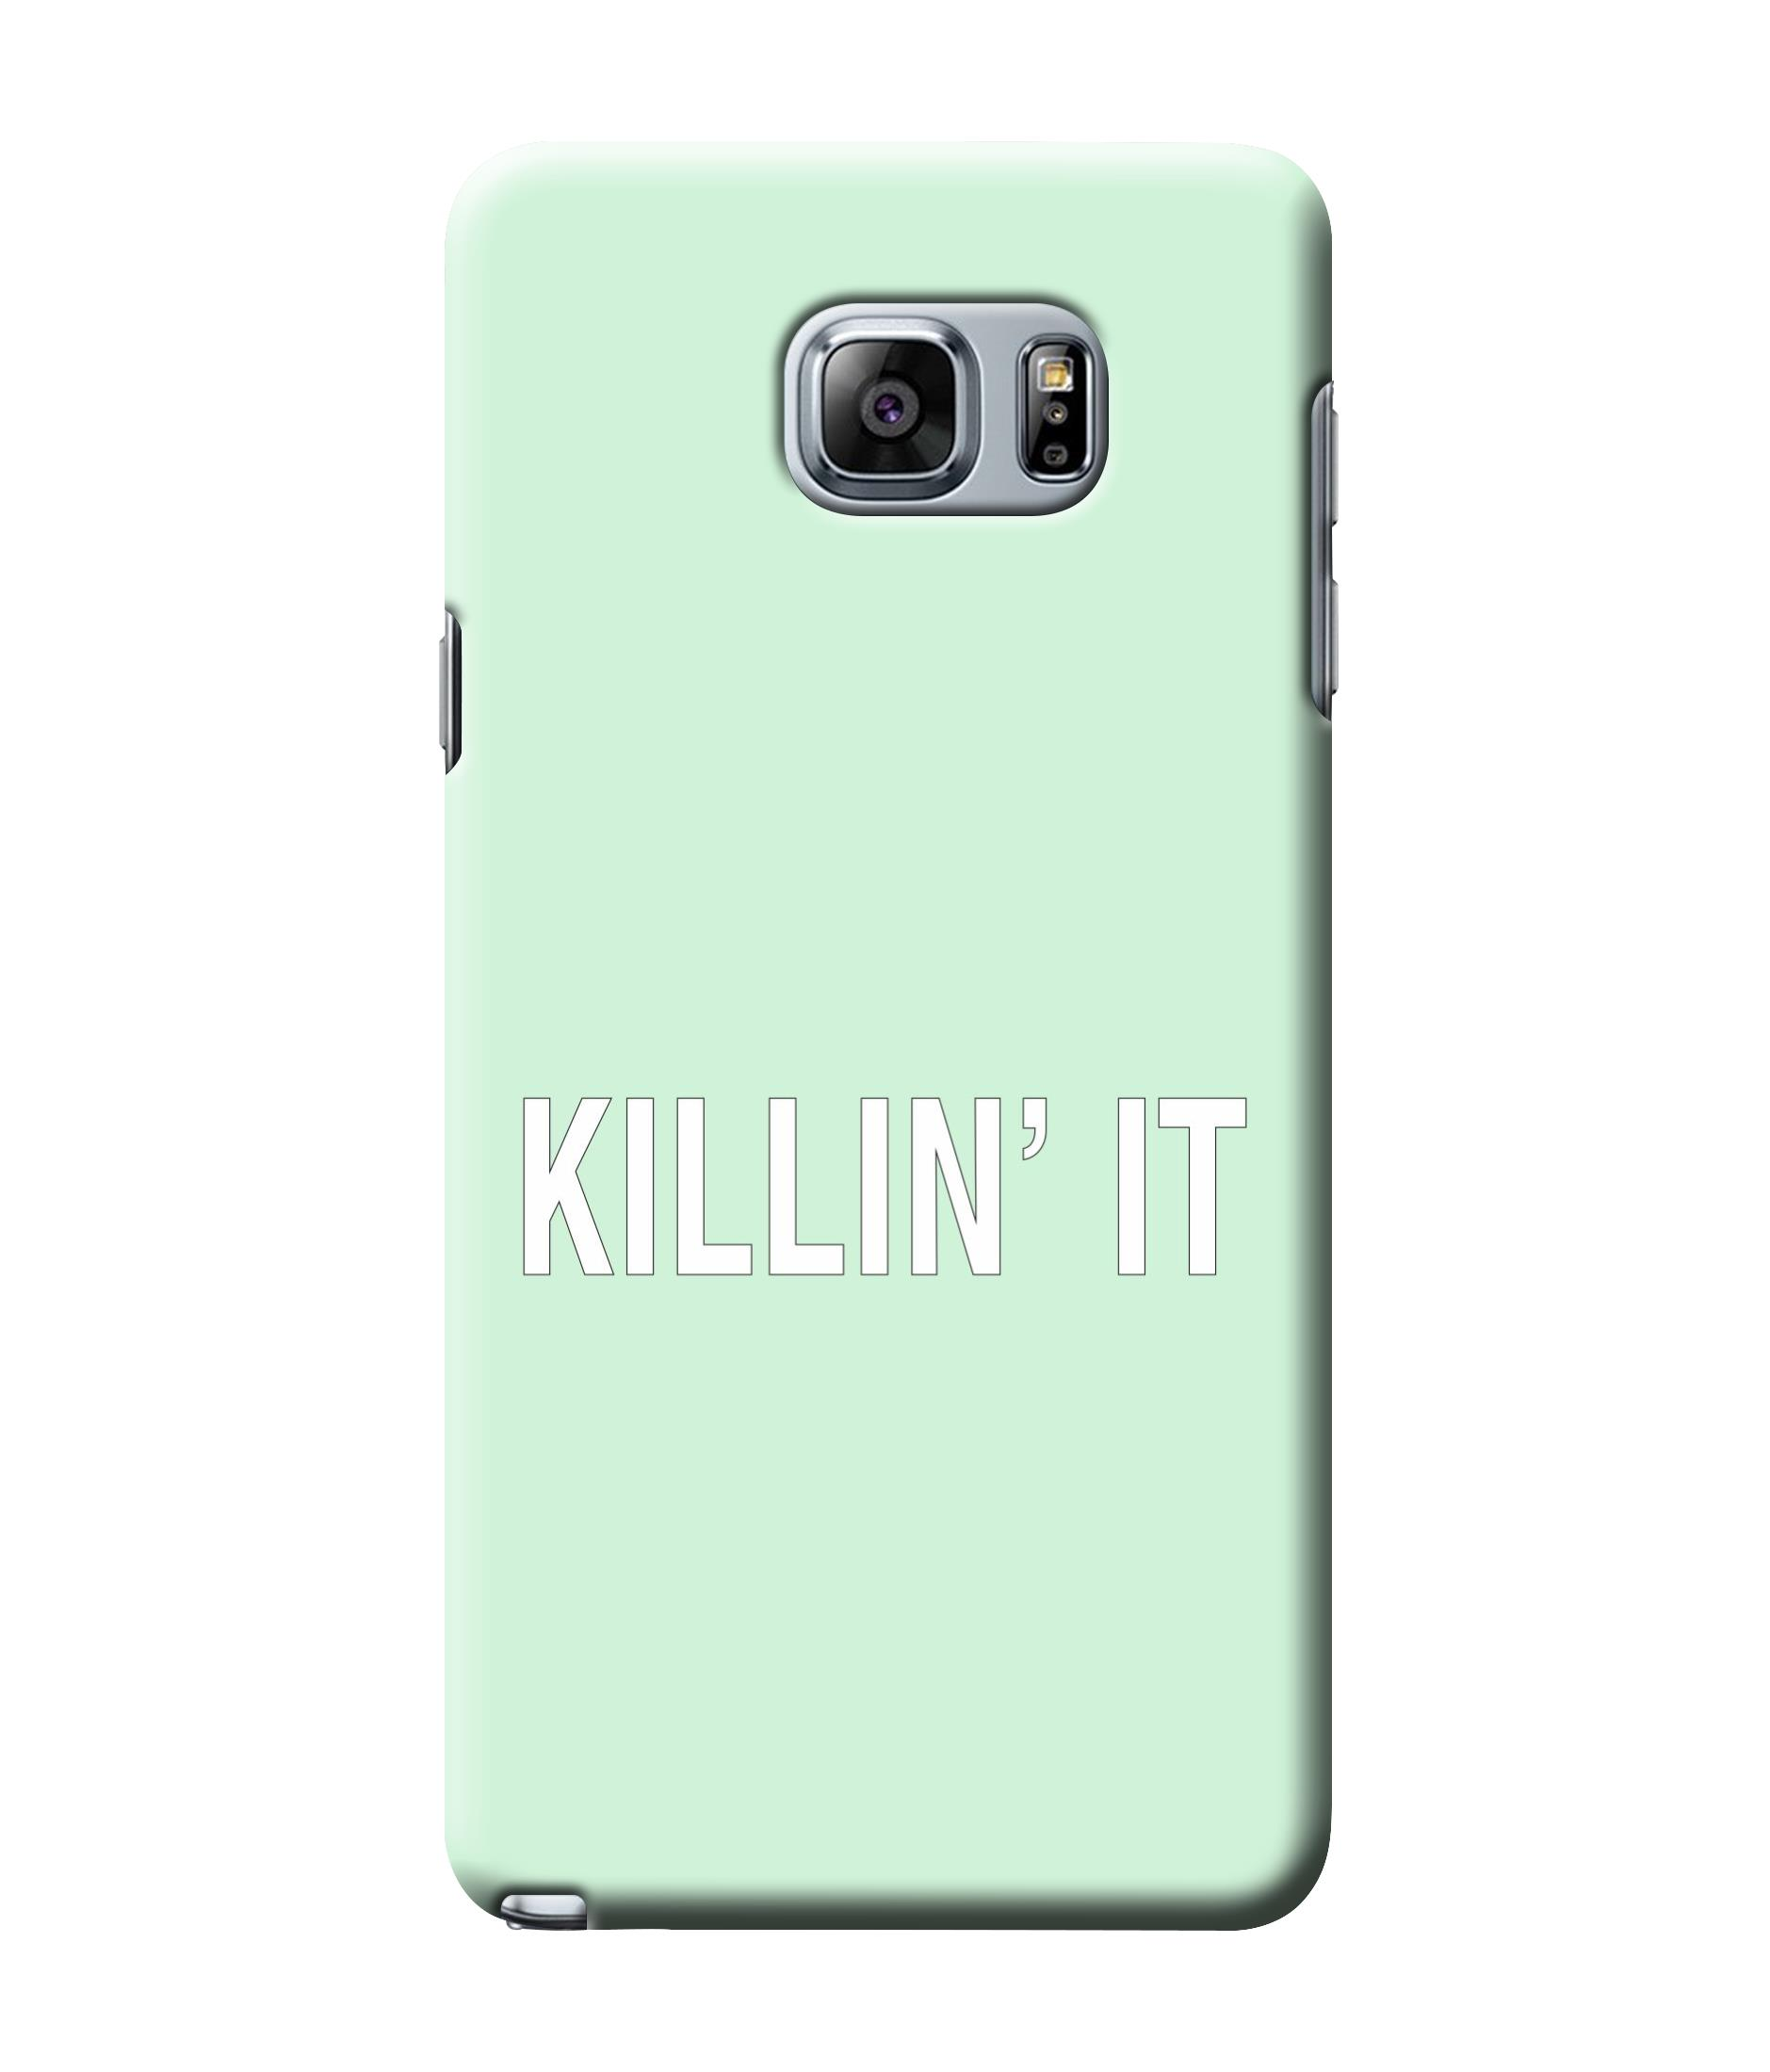 caseophile2 Samsung Galaxy Note 5 Killing It Green Mobile Case